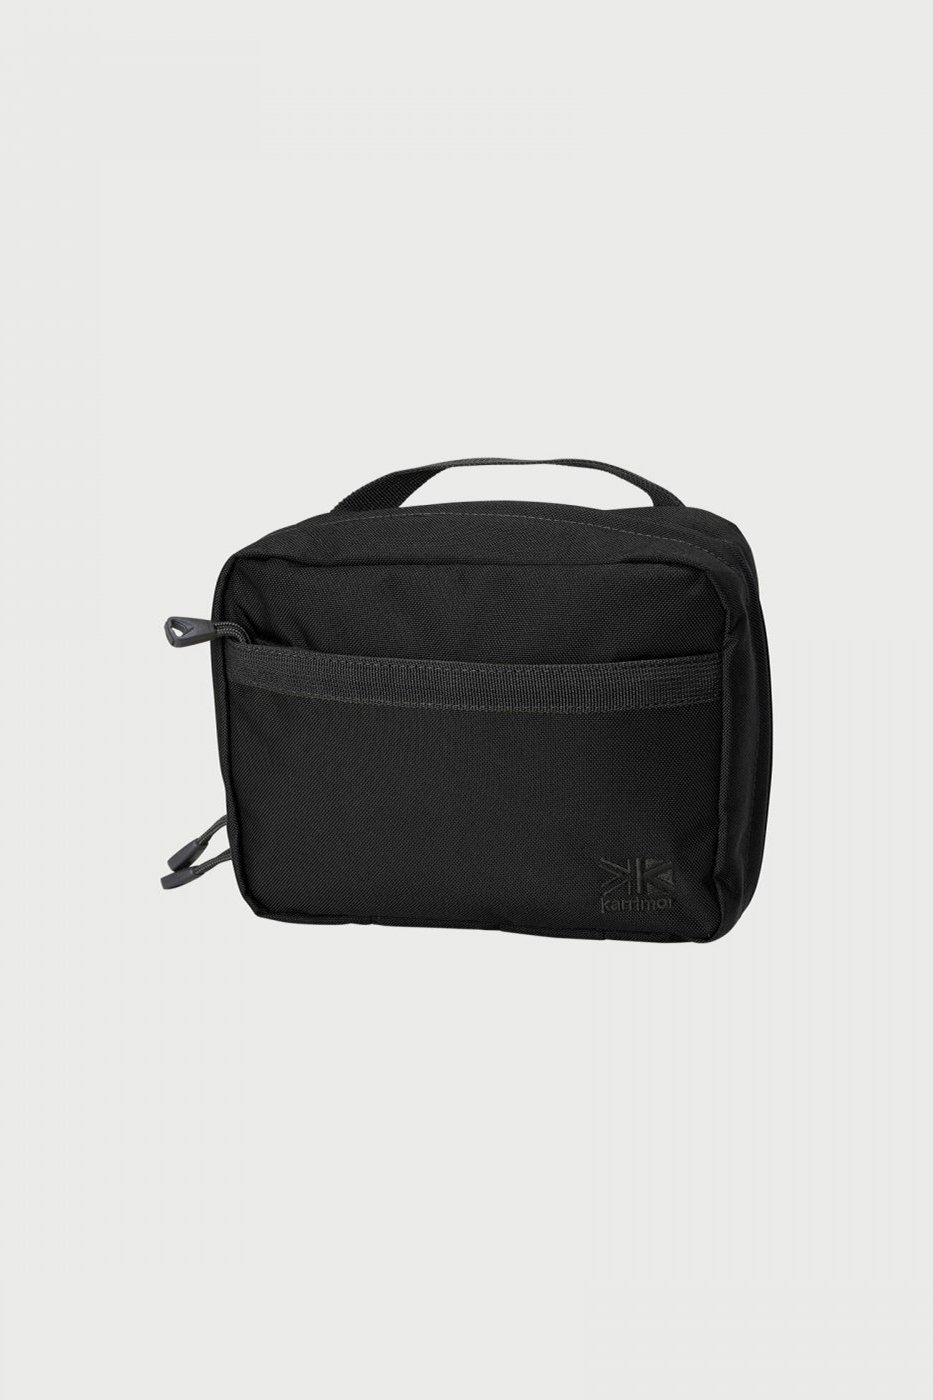 <img class='new_mark_img1' src='https://img.shop-pro.jp/img/new/icons5.gif' style='border:none;display:inline;margin:0px;padding:0px;width:auto;' />Karrimor-カリマー-tribute crossbody pouch-BLACK-